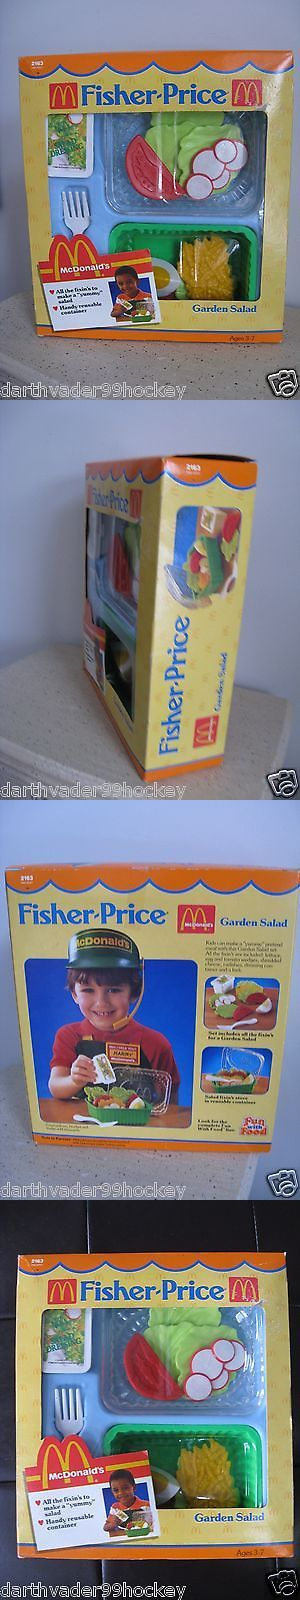 Other Fisher-Price 1963-Now 374: Fisher Price 1988 Fun Food ? 2163 Mcdonalds Garden Salad Set ? New Sealed Rare! -> BUY IT NOW ONLY: $89.5 on eBay!